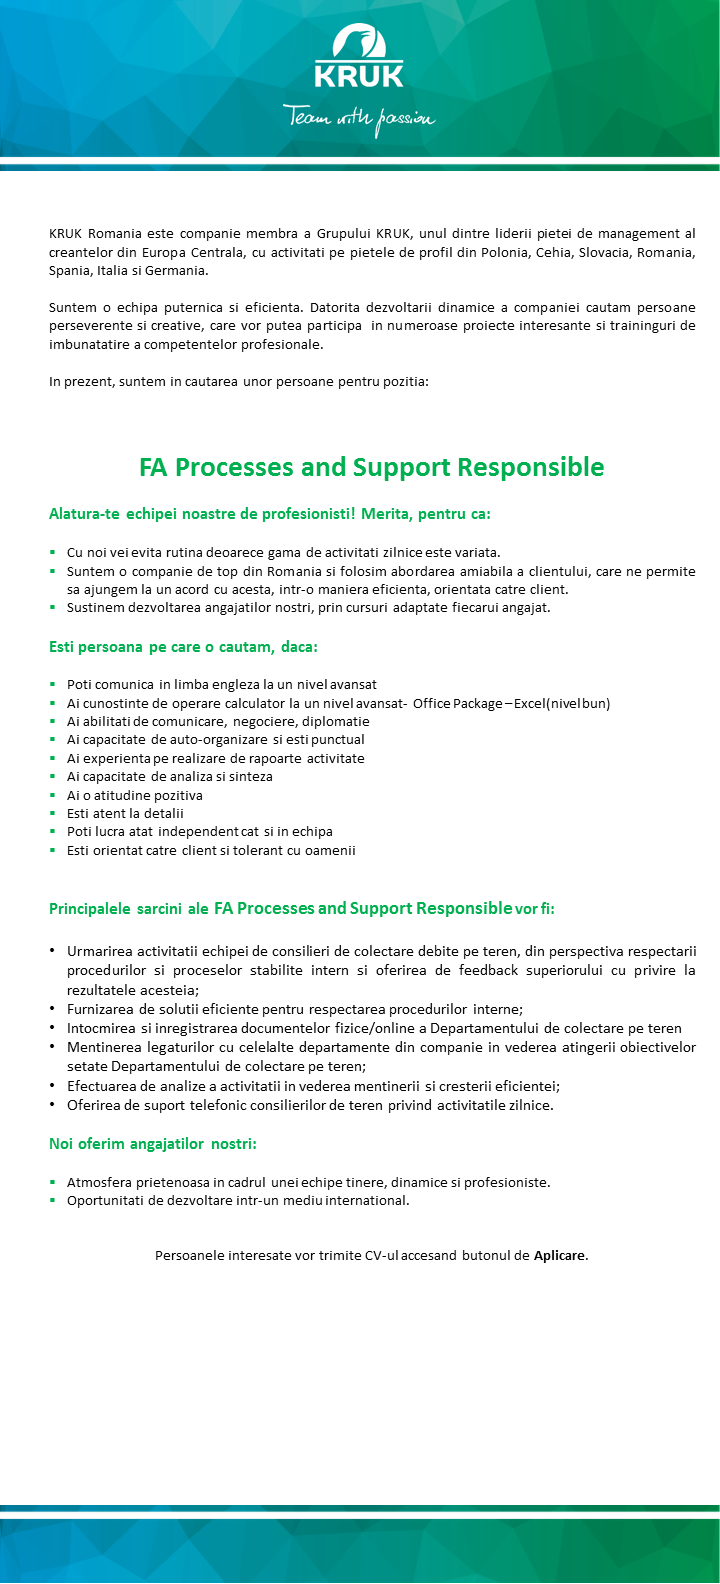 FA Processes and Support Responsible_extern